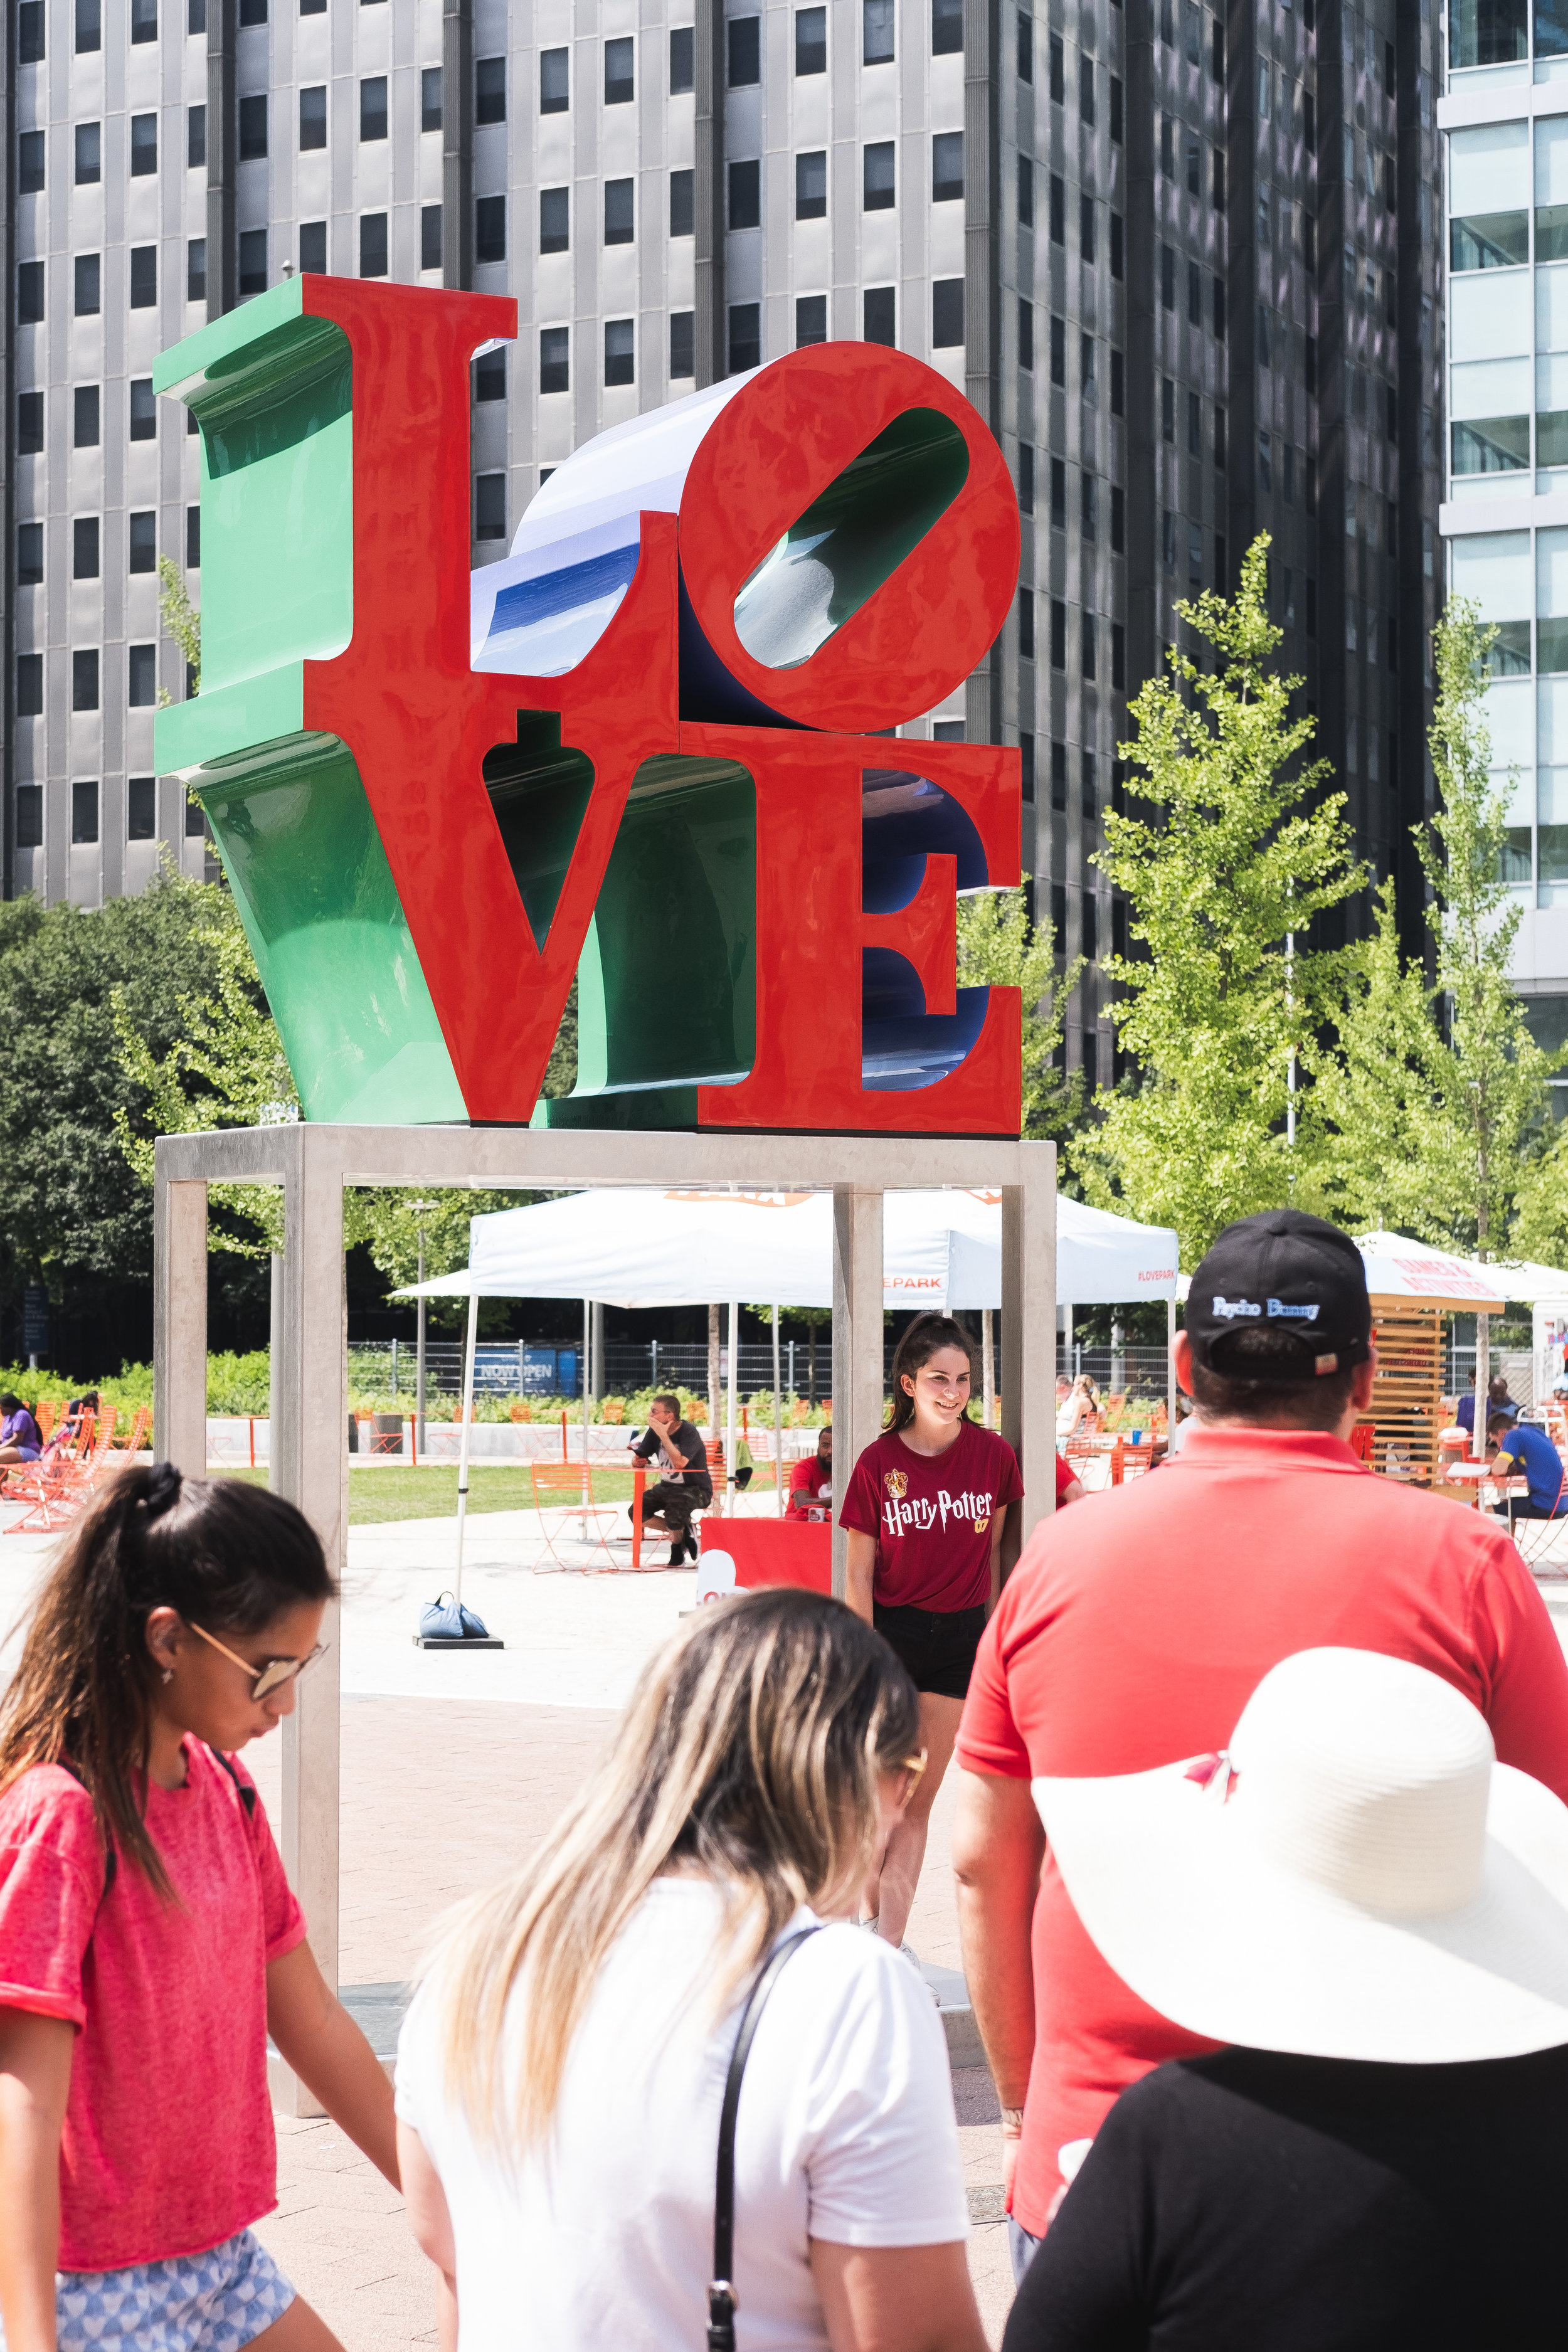 2019_LOVE PARK STATUE_ACTIVITES_THE PHILLY CHECKLIST-2.jpg